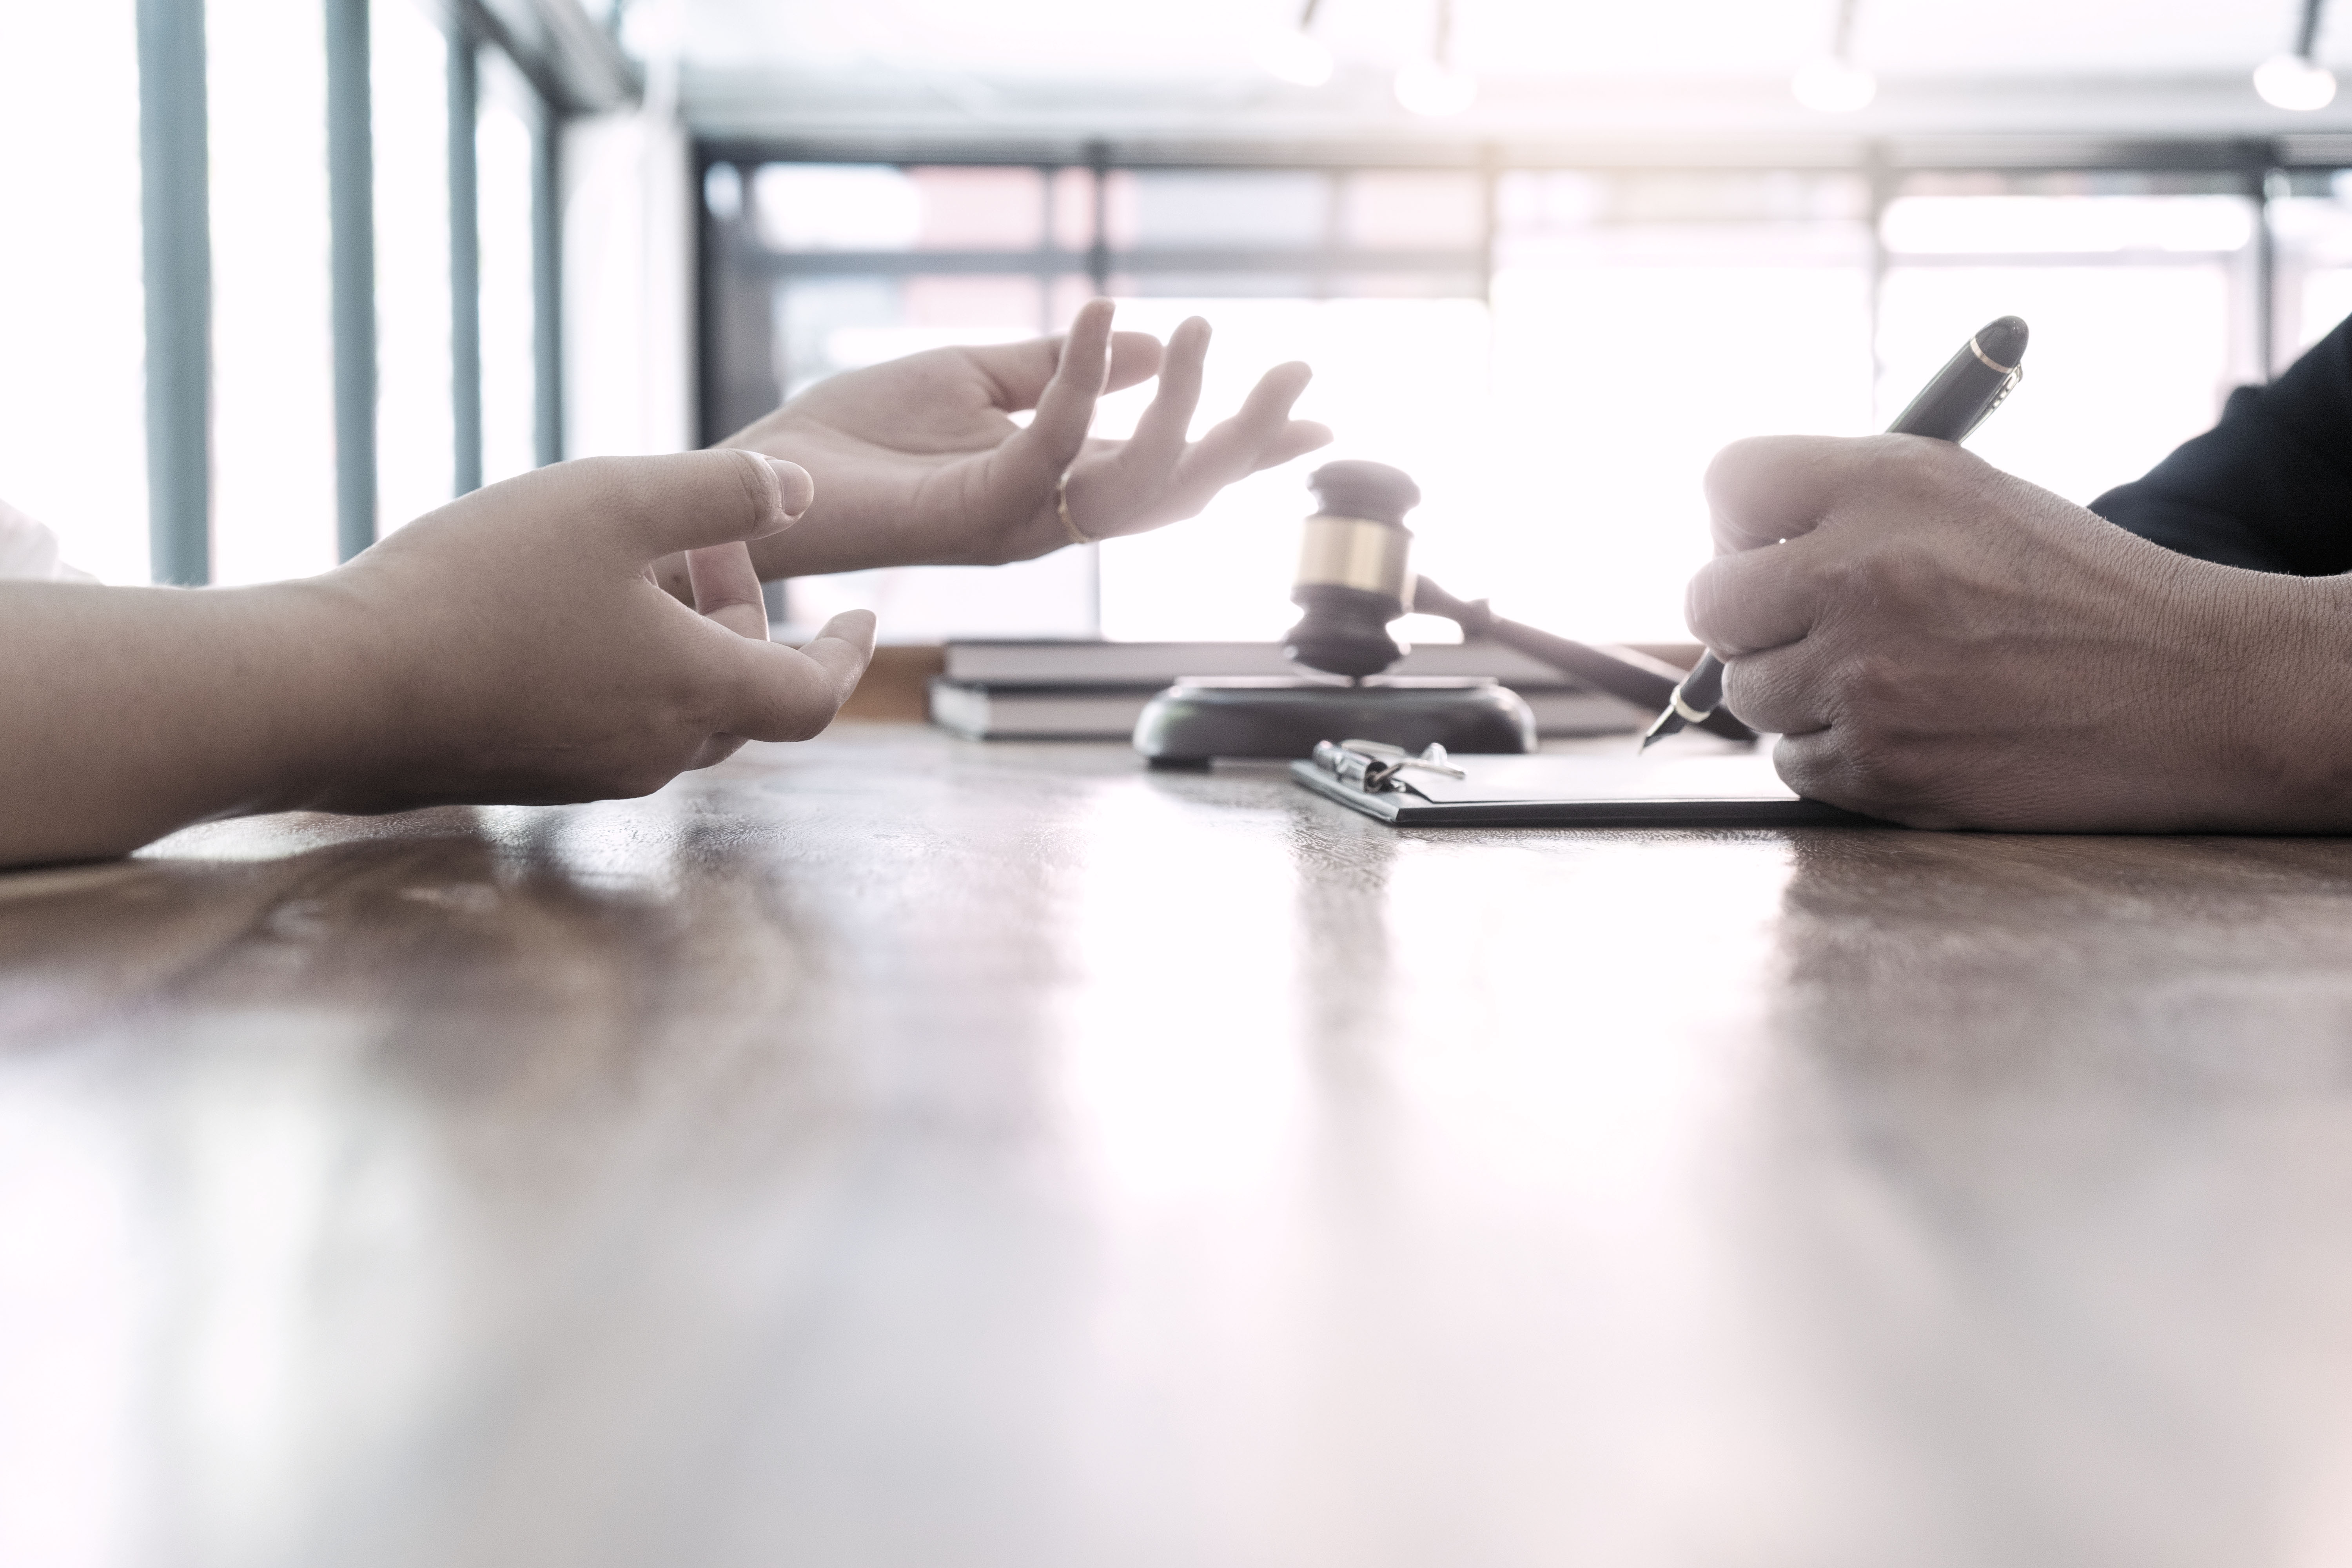 Two business people's hands are shown while they have a discussion at a desk